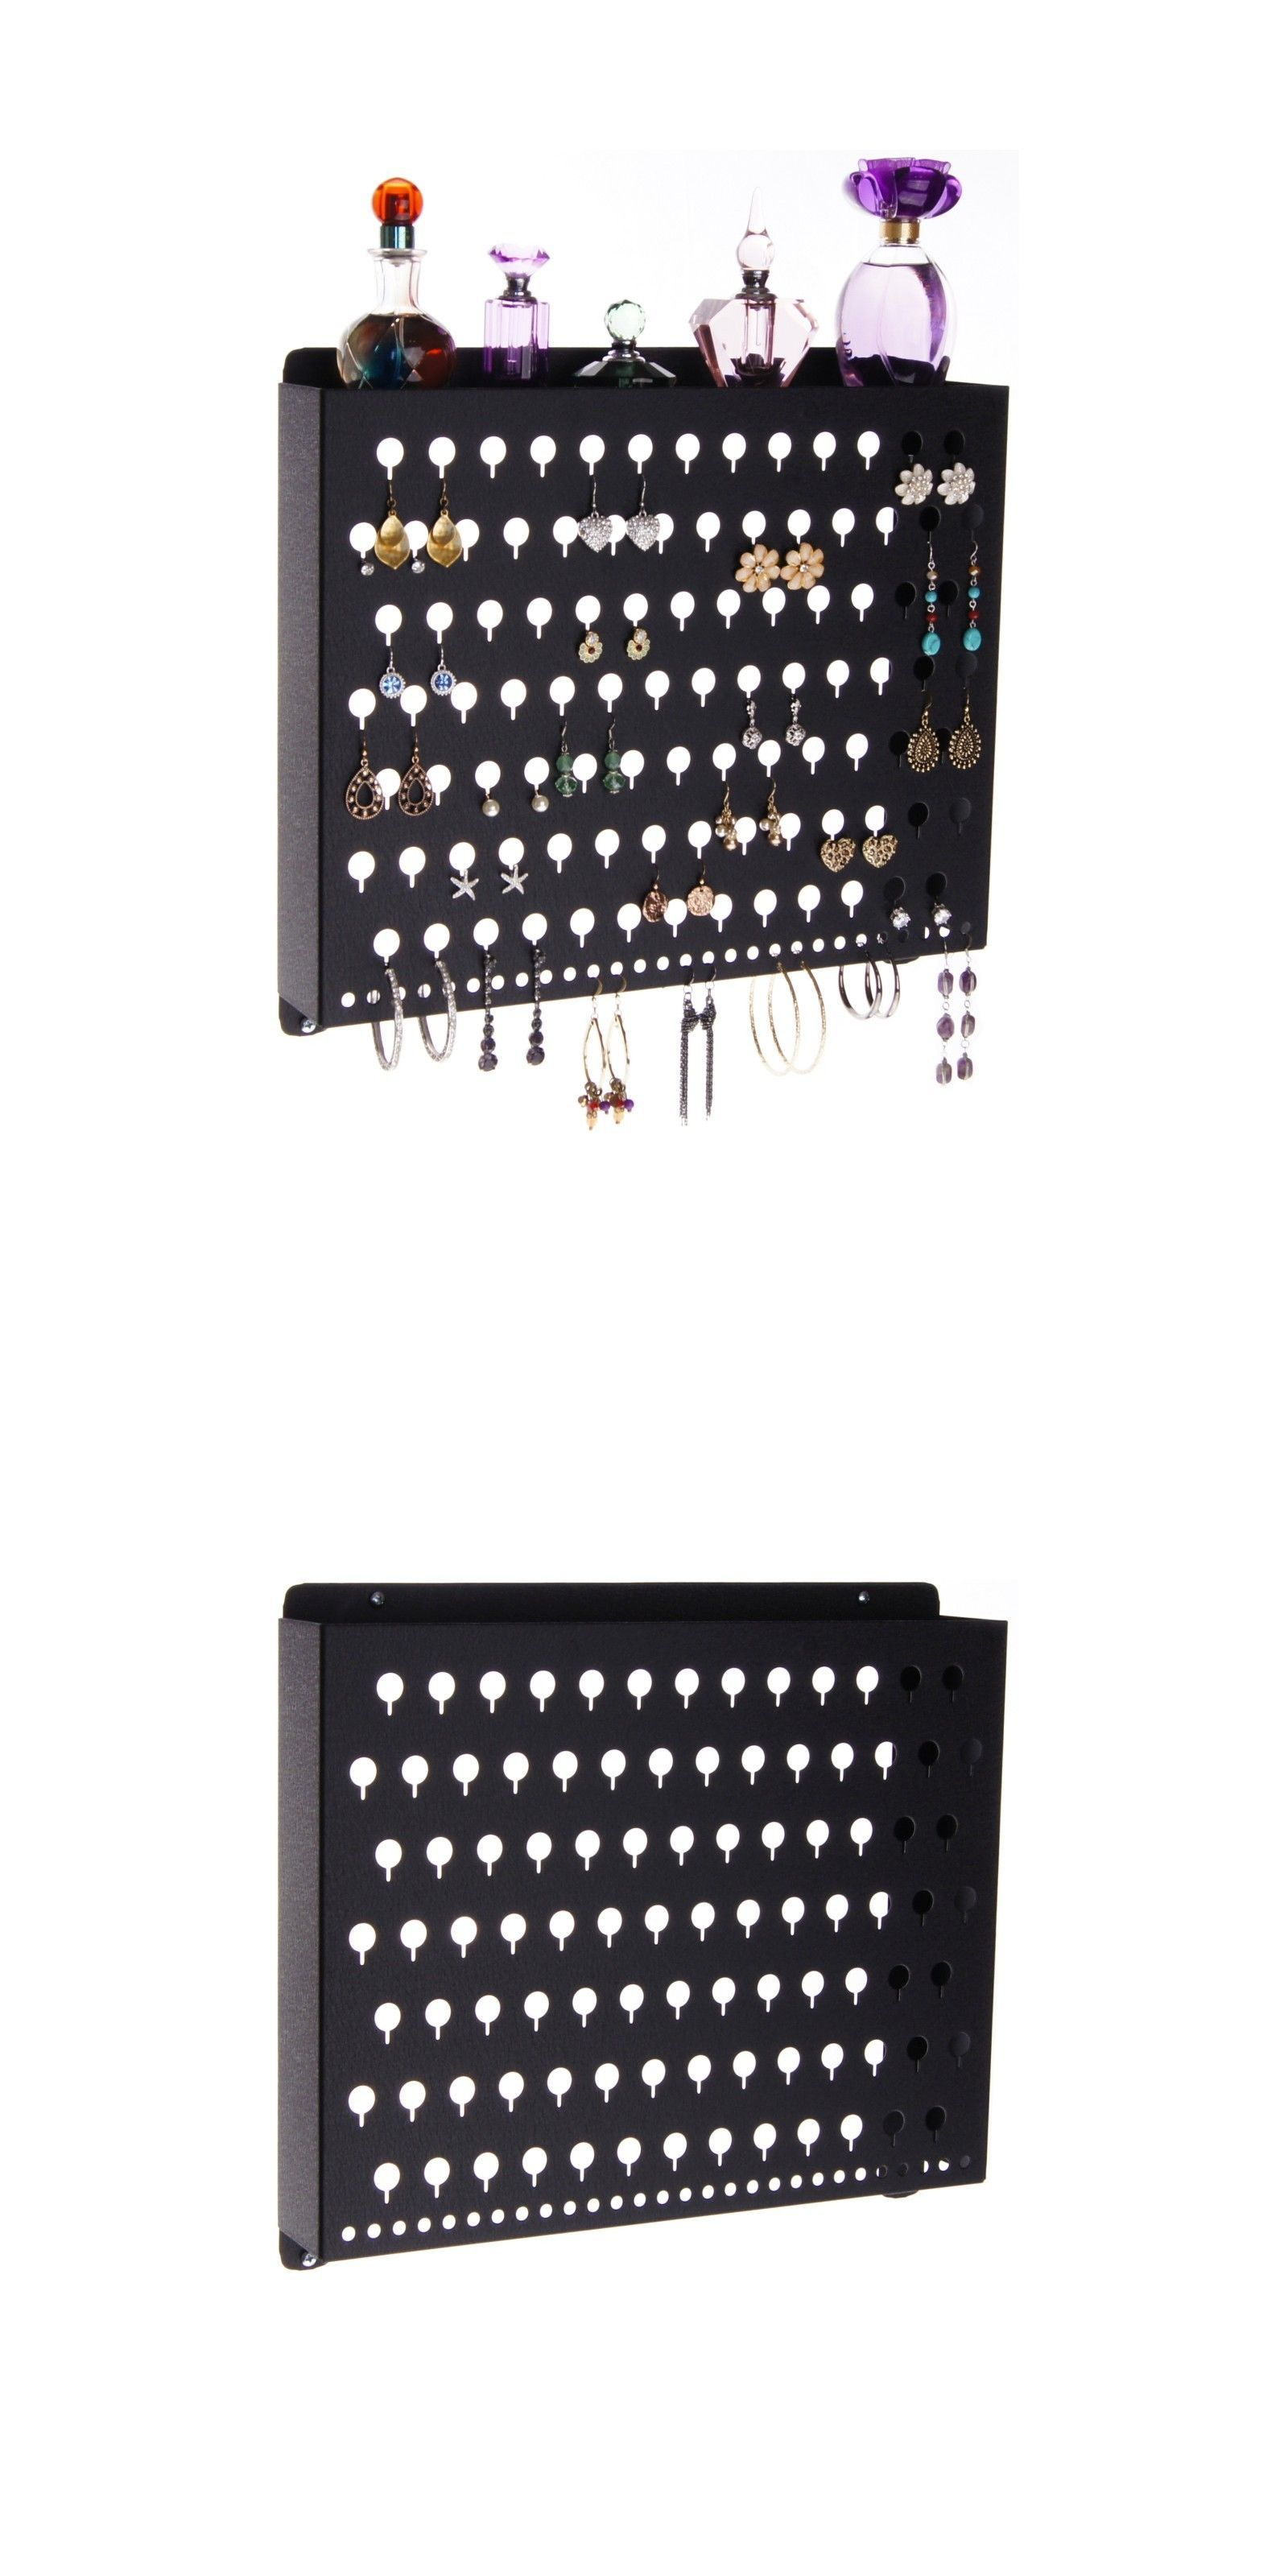 Earring 168161 Earring Holder Wall Mount Jewelry Organizer Hanging